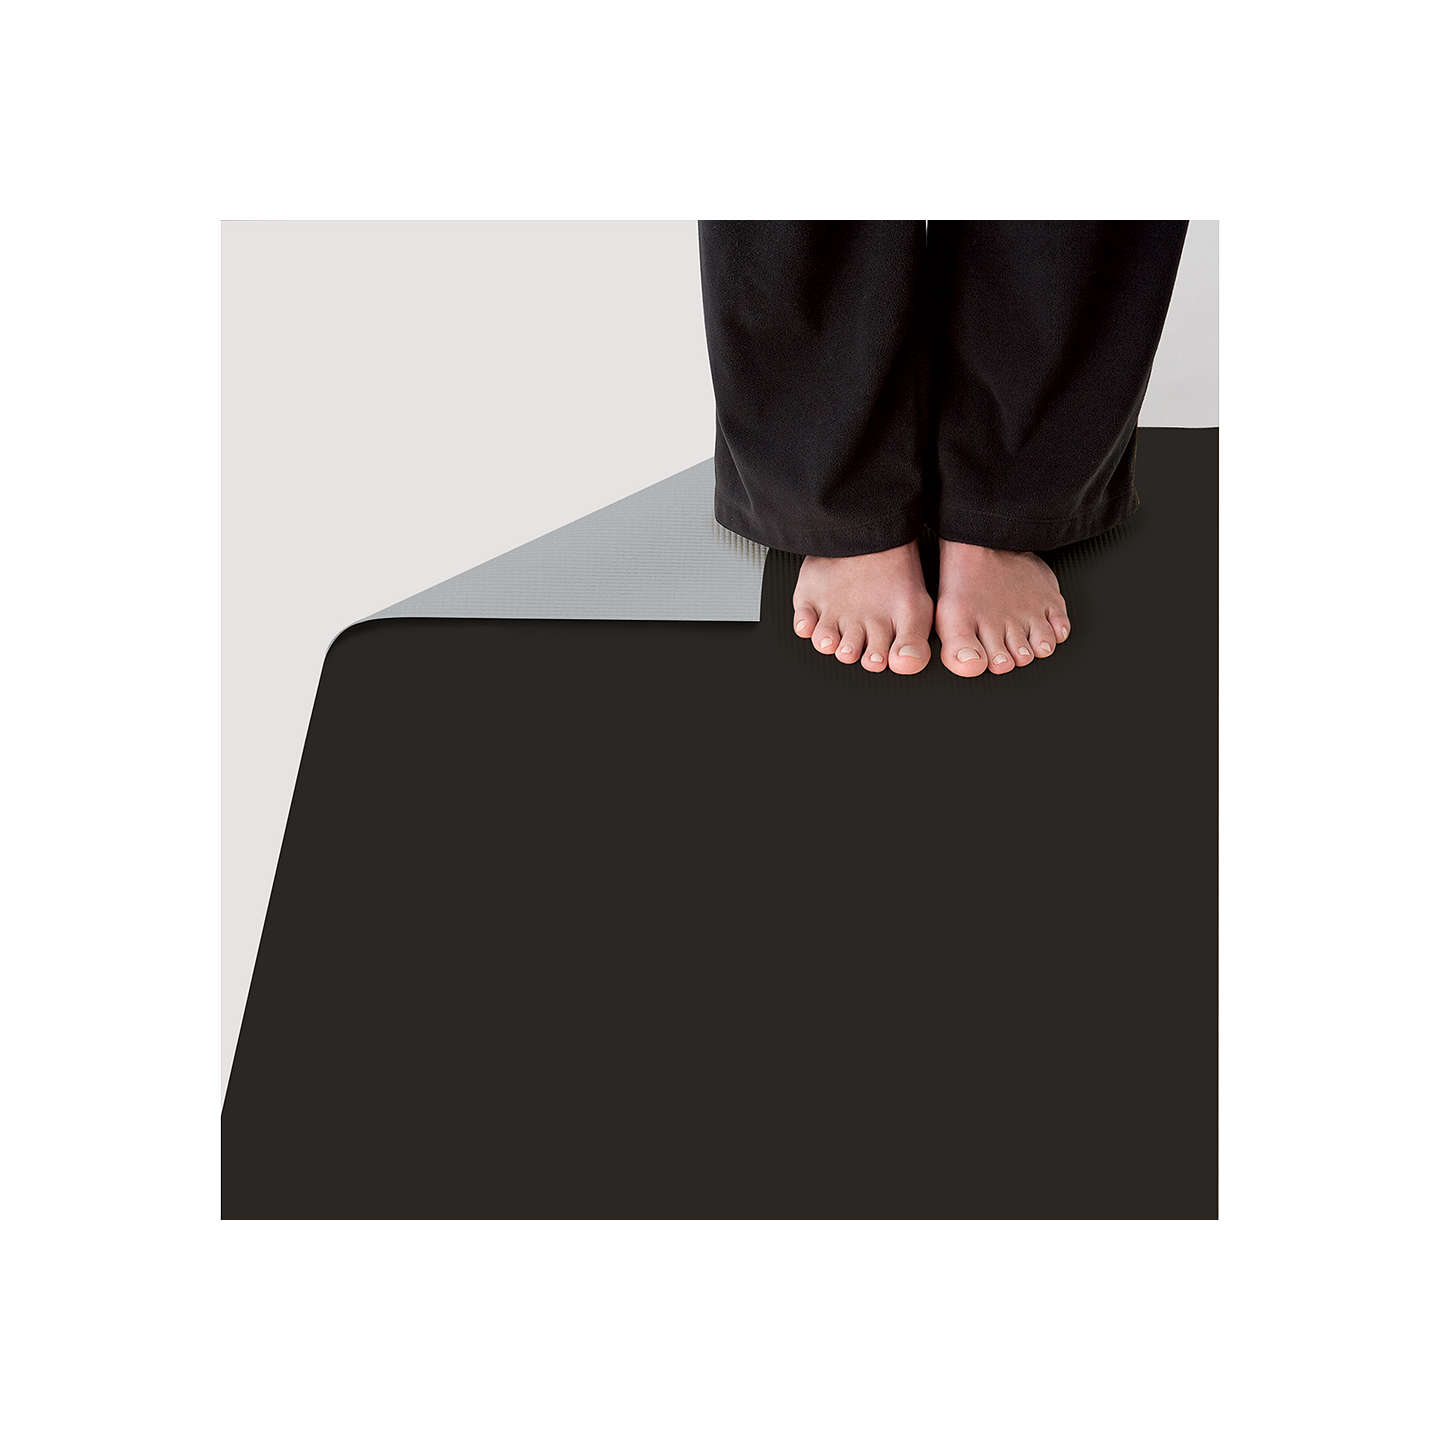 Gaiam Premium 5mm Yoga Mat, Black At John Lewis